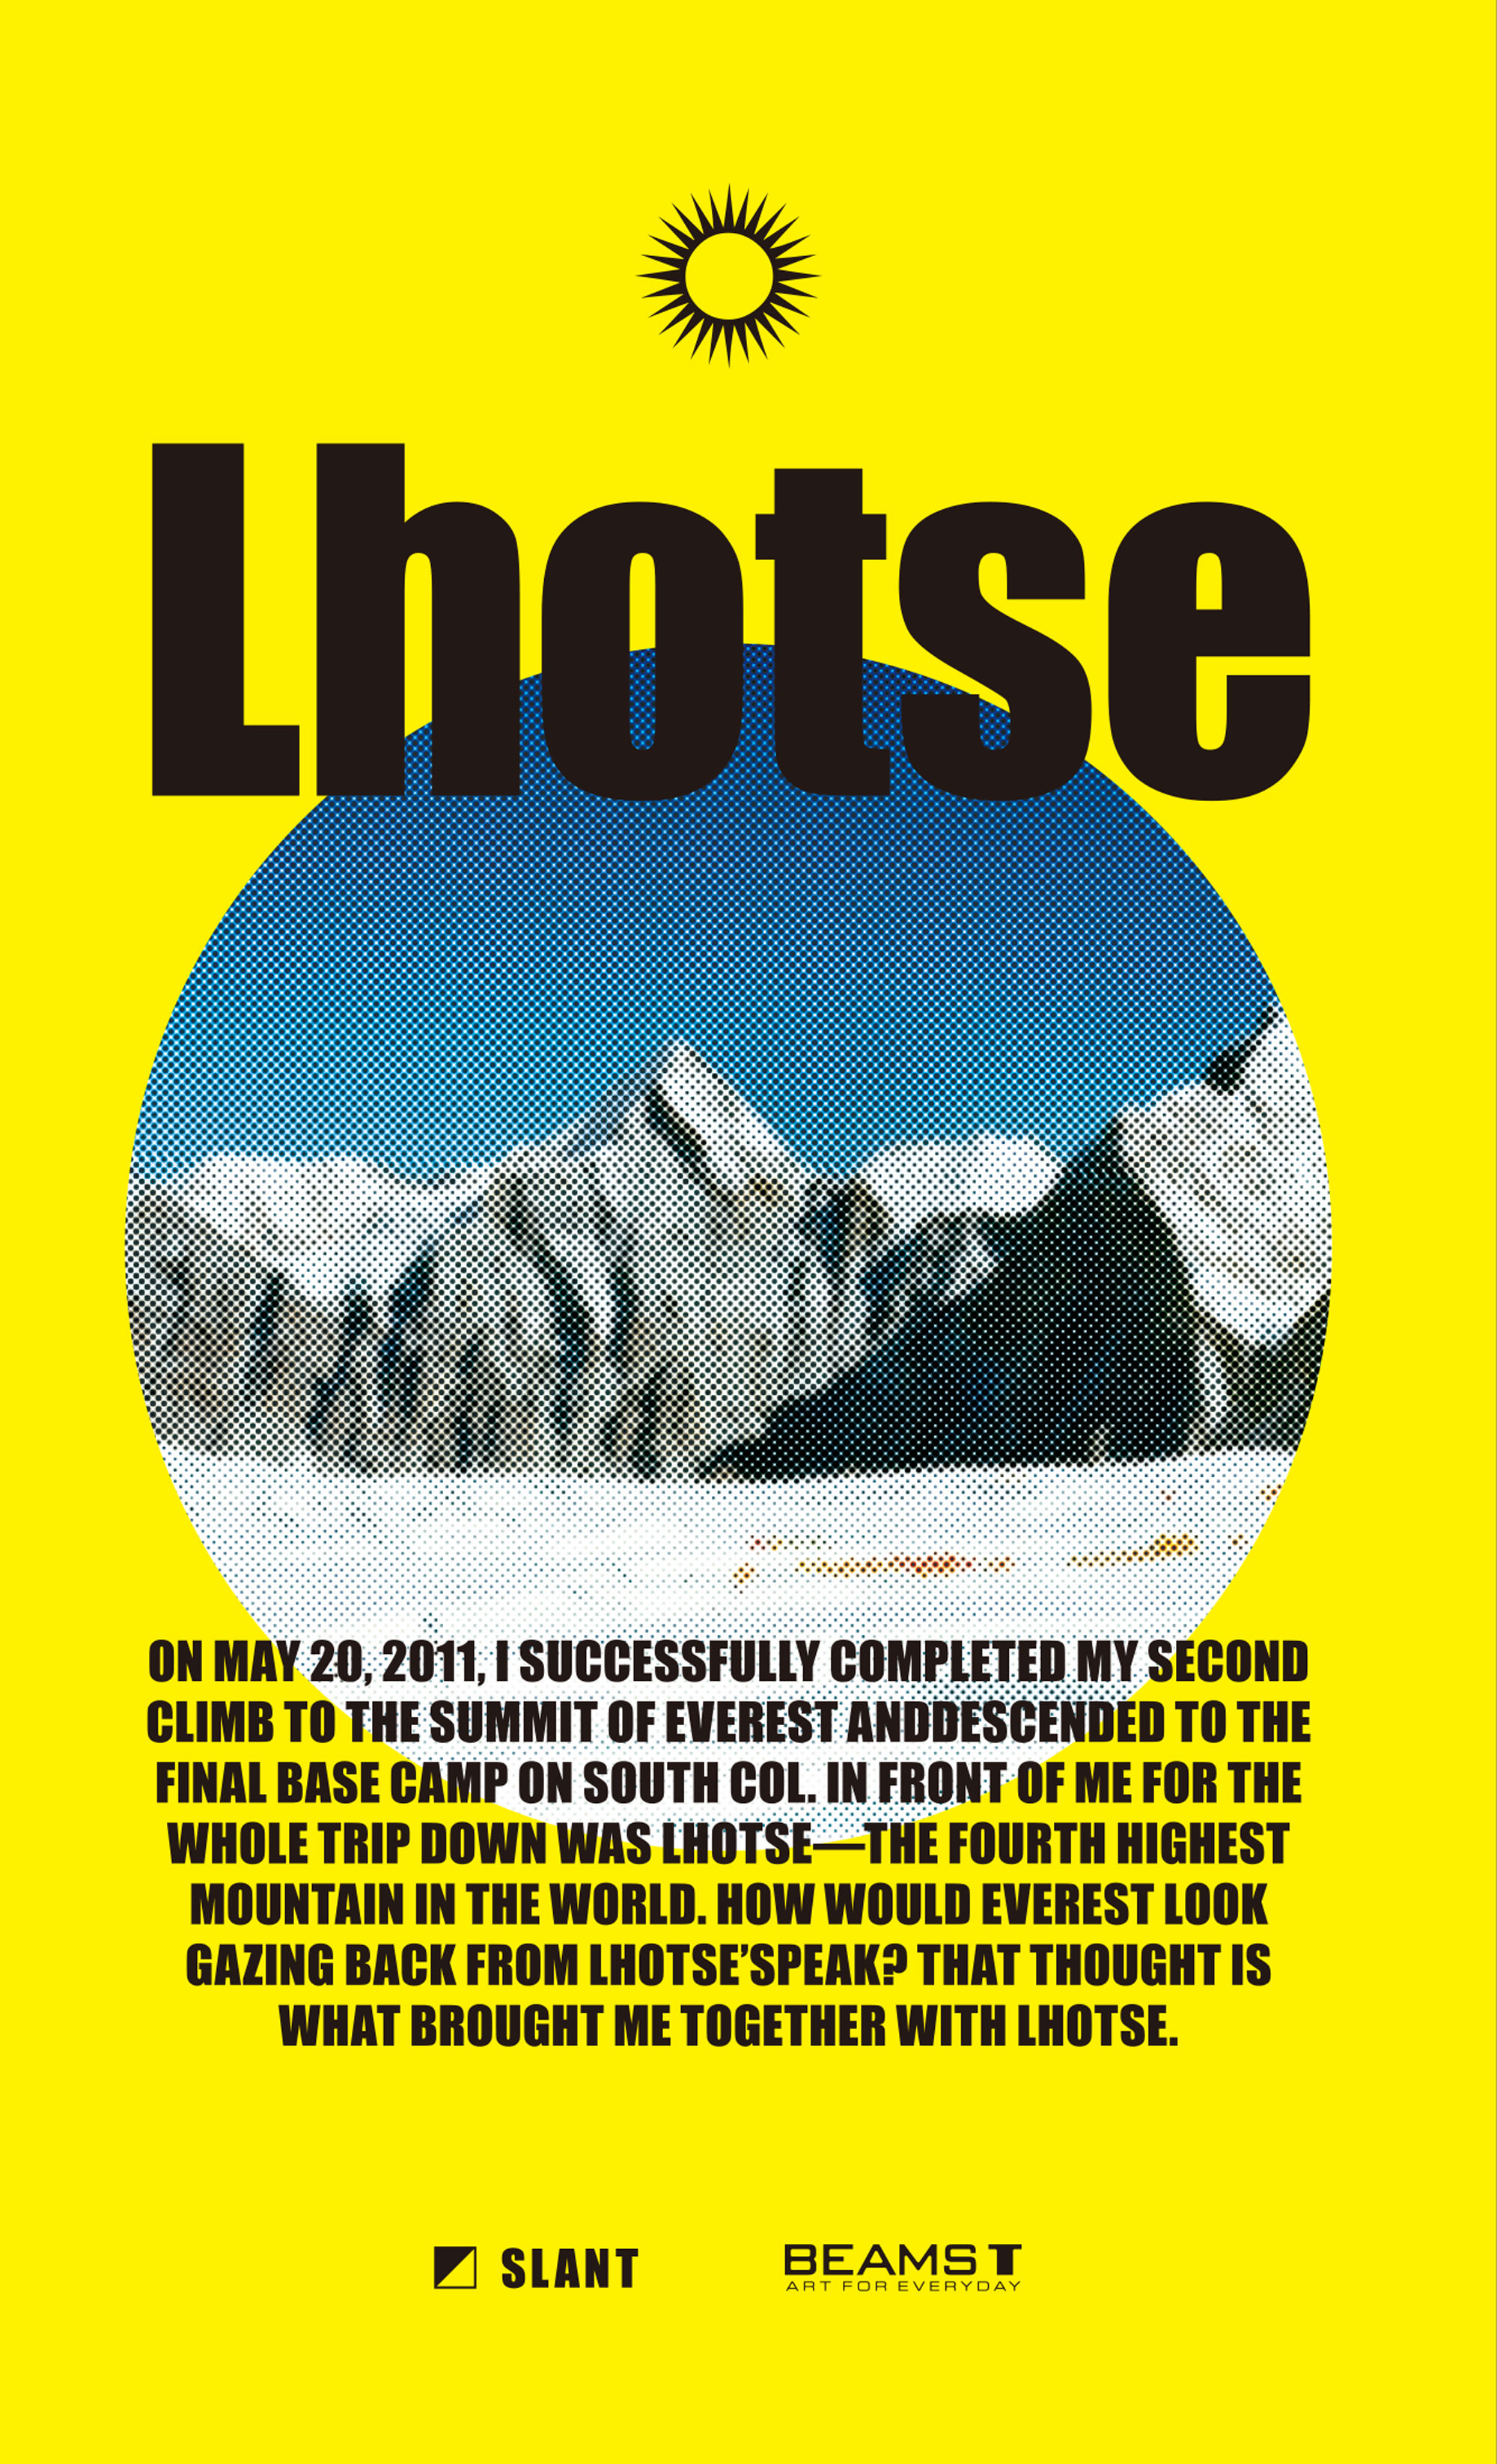 beams_lhotse